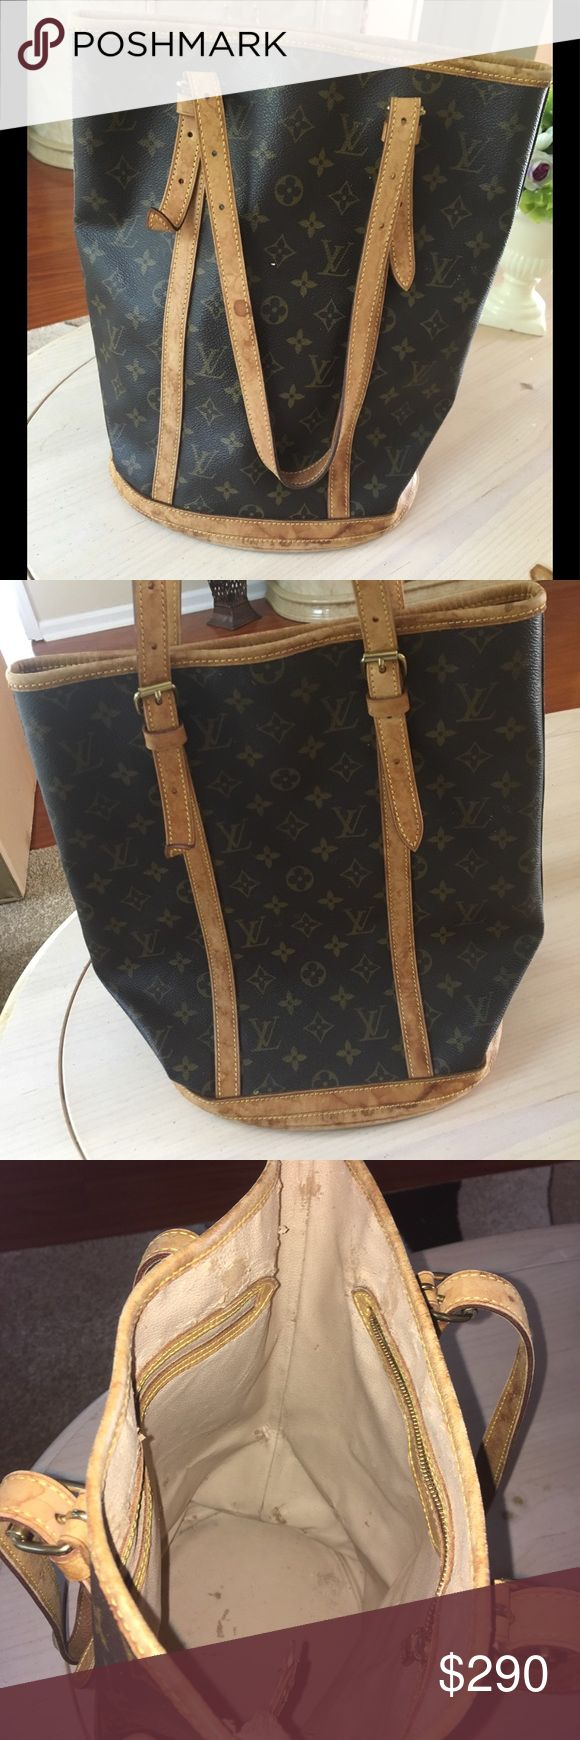 💯% Authentic lv large bucket bag Good condition. Water marks on the leather. Have not tried cleaning it. Normal wear, scratches, rubbing. Inside started to peel and some stickiness. Measures approximately 13.5 x 10.5 x 8 inch. Louis Vuitton Bags Shoulder Bags